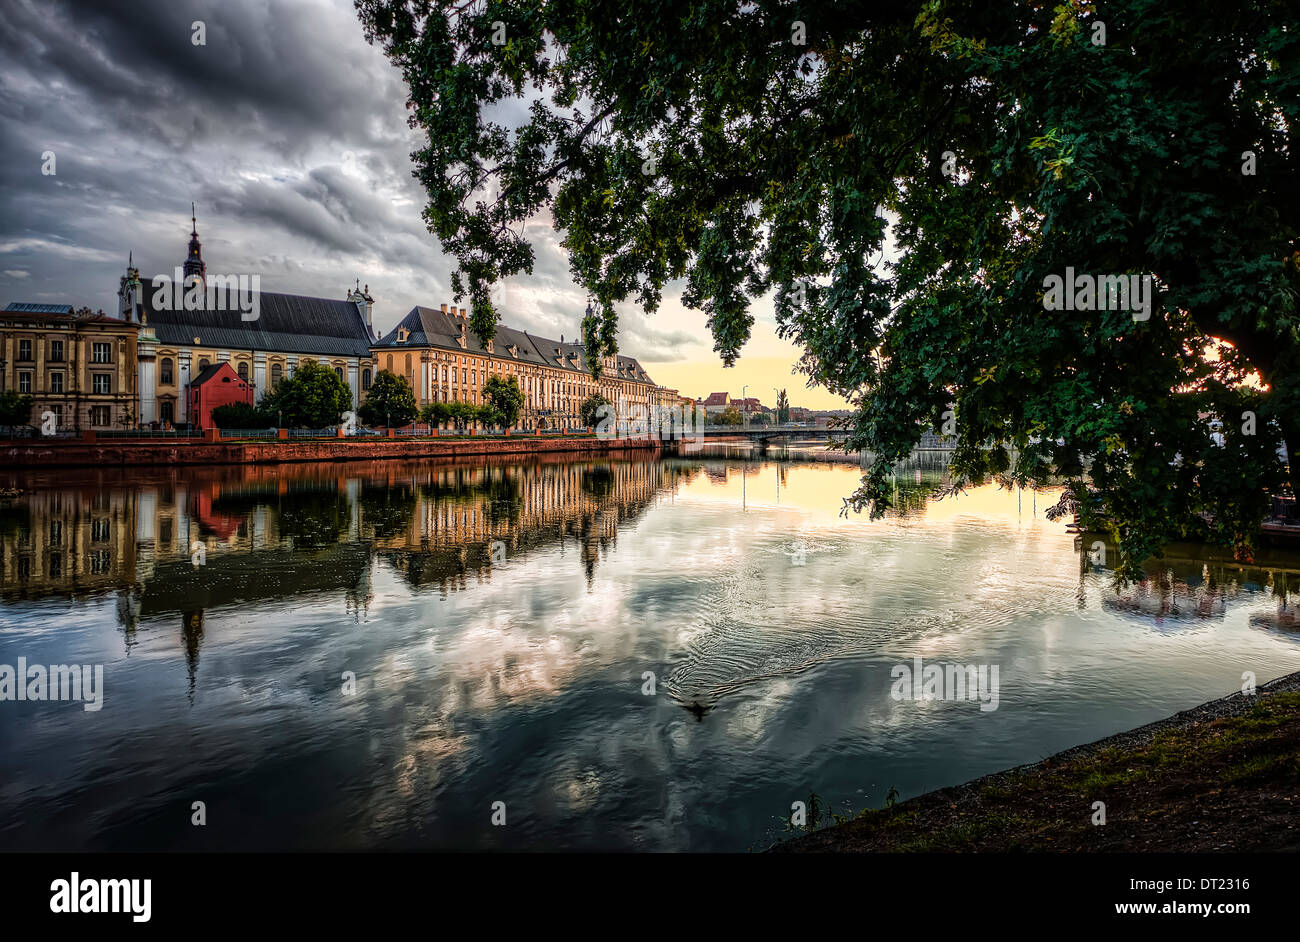 Wroclaw, Poland, Sunset over the river Oder and the University building - Stock Image